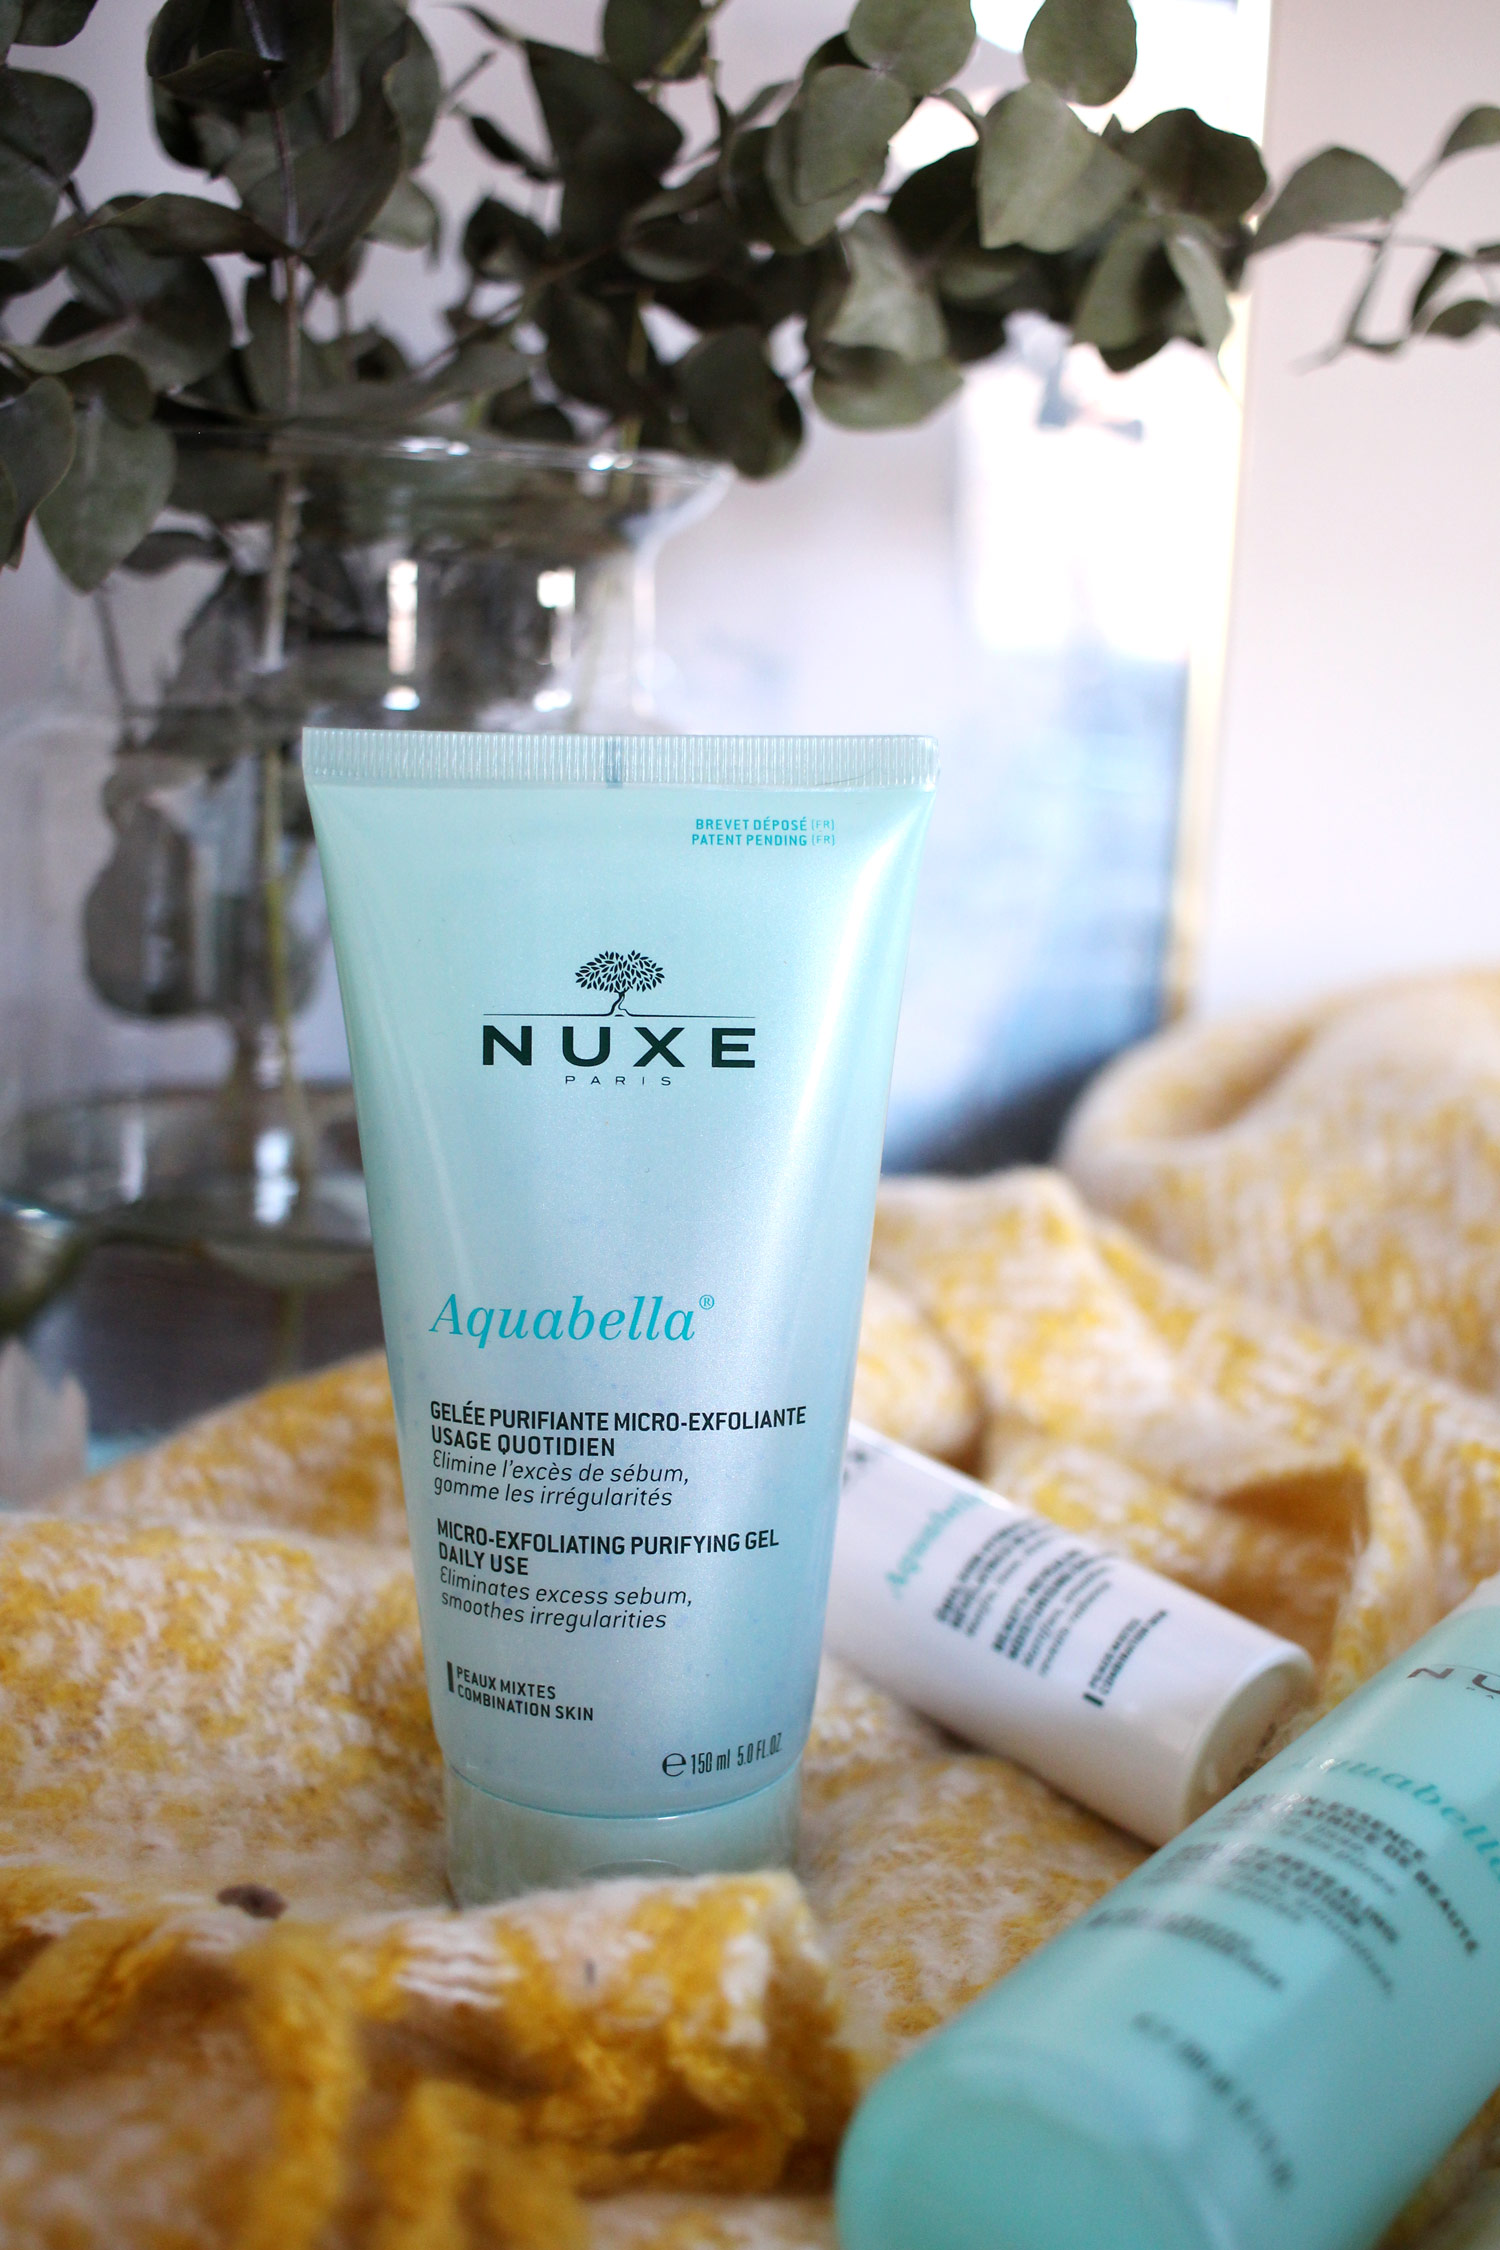 nuxe-aquabella-skincare-range-review-3